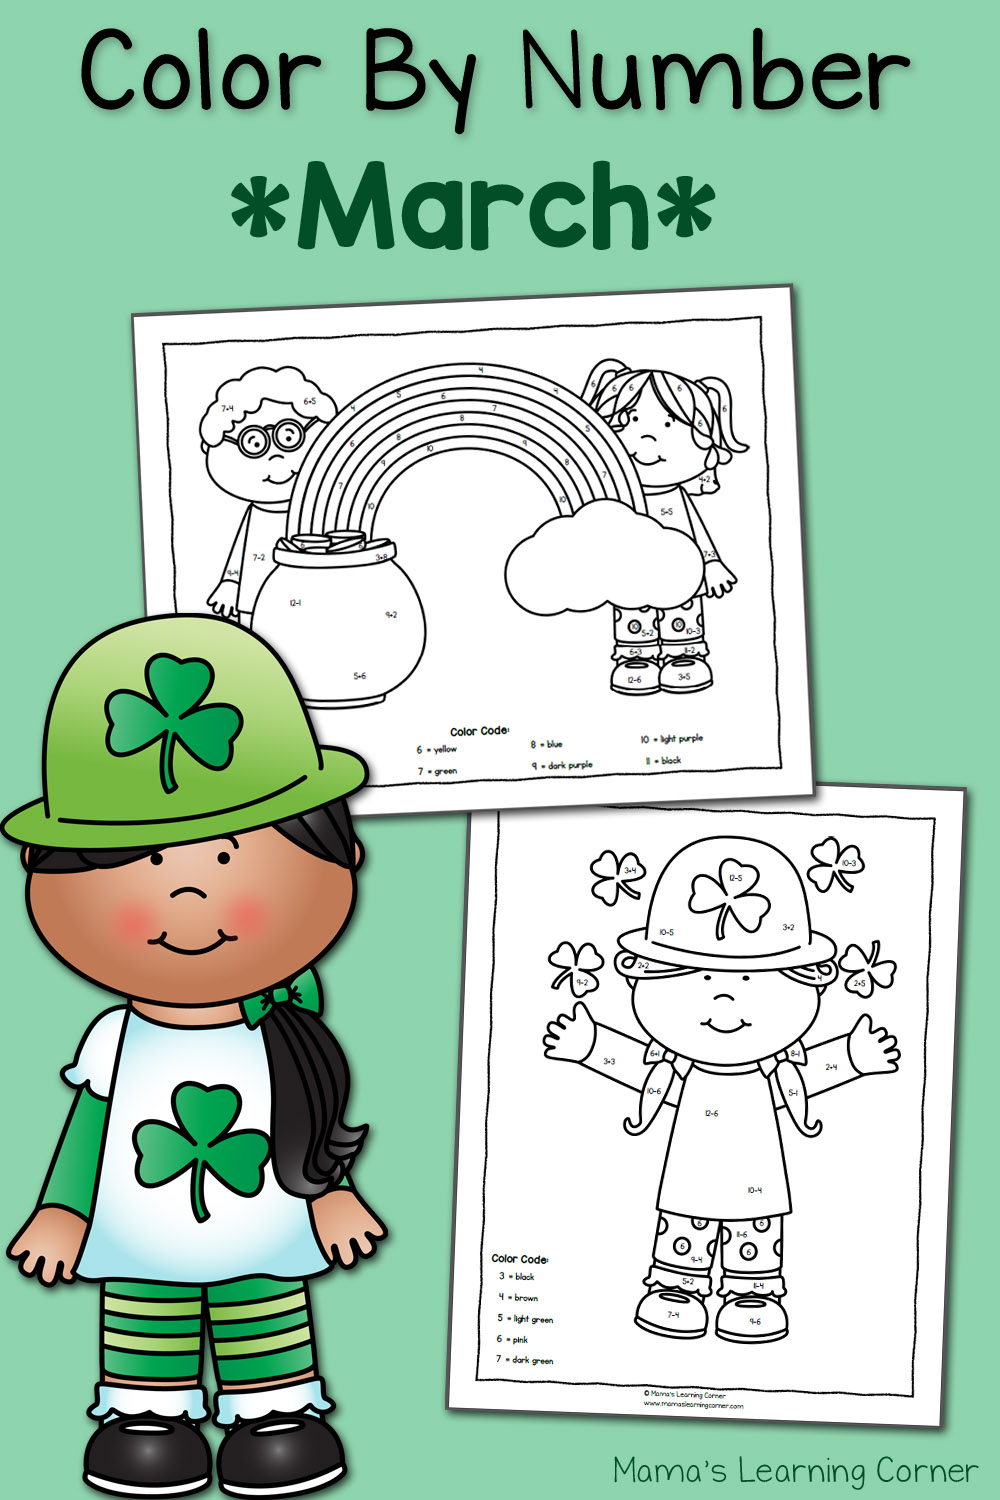 medium resolution of Color by Number Worksheets for March: St. Patrick's Day! - Mamas Learning  Corner